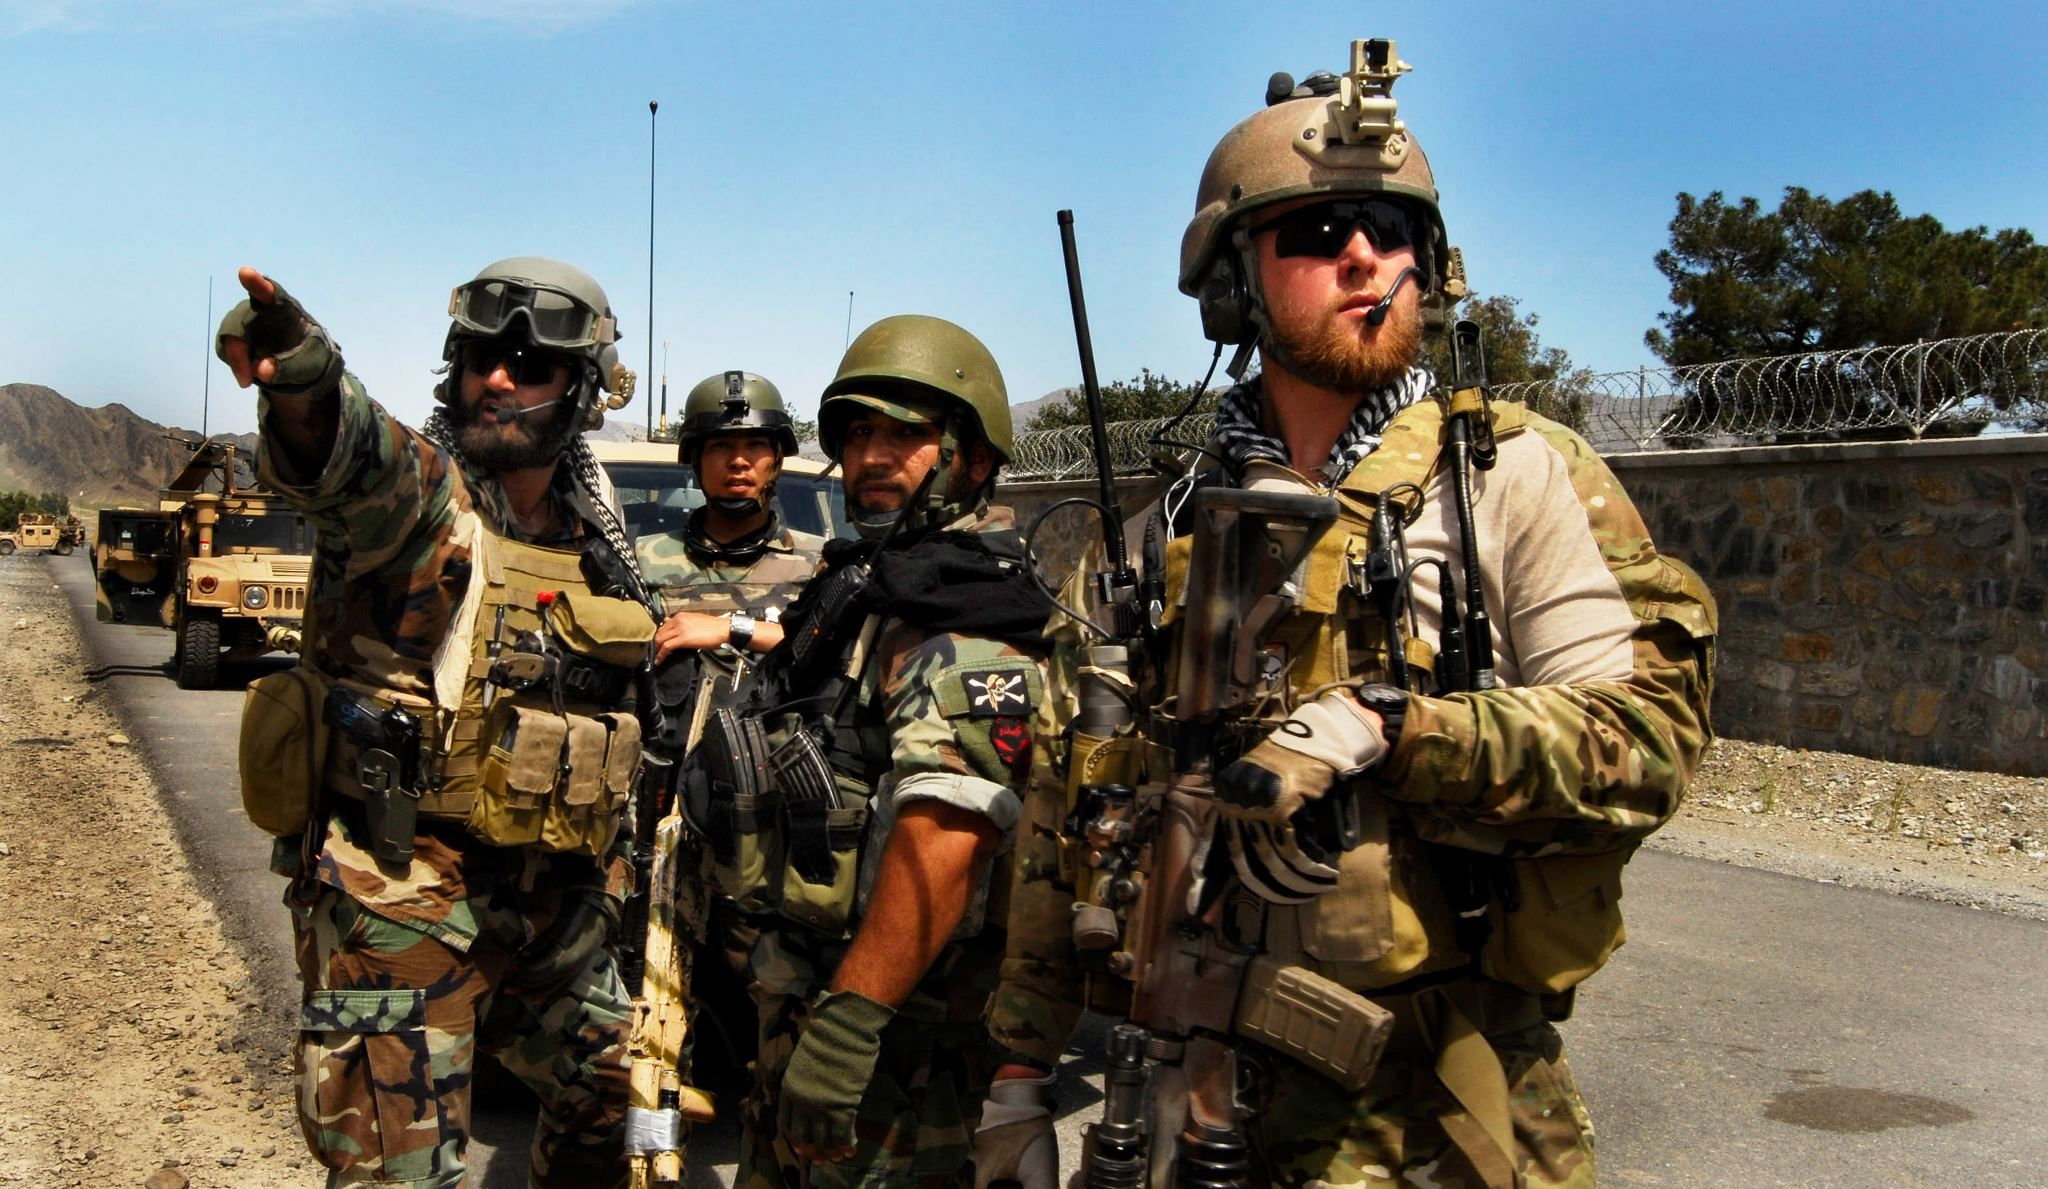 Military special forces · US Army SF FTW - Soldier Systems Daily